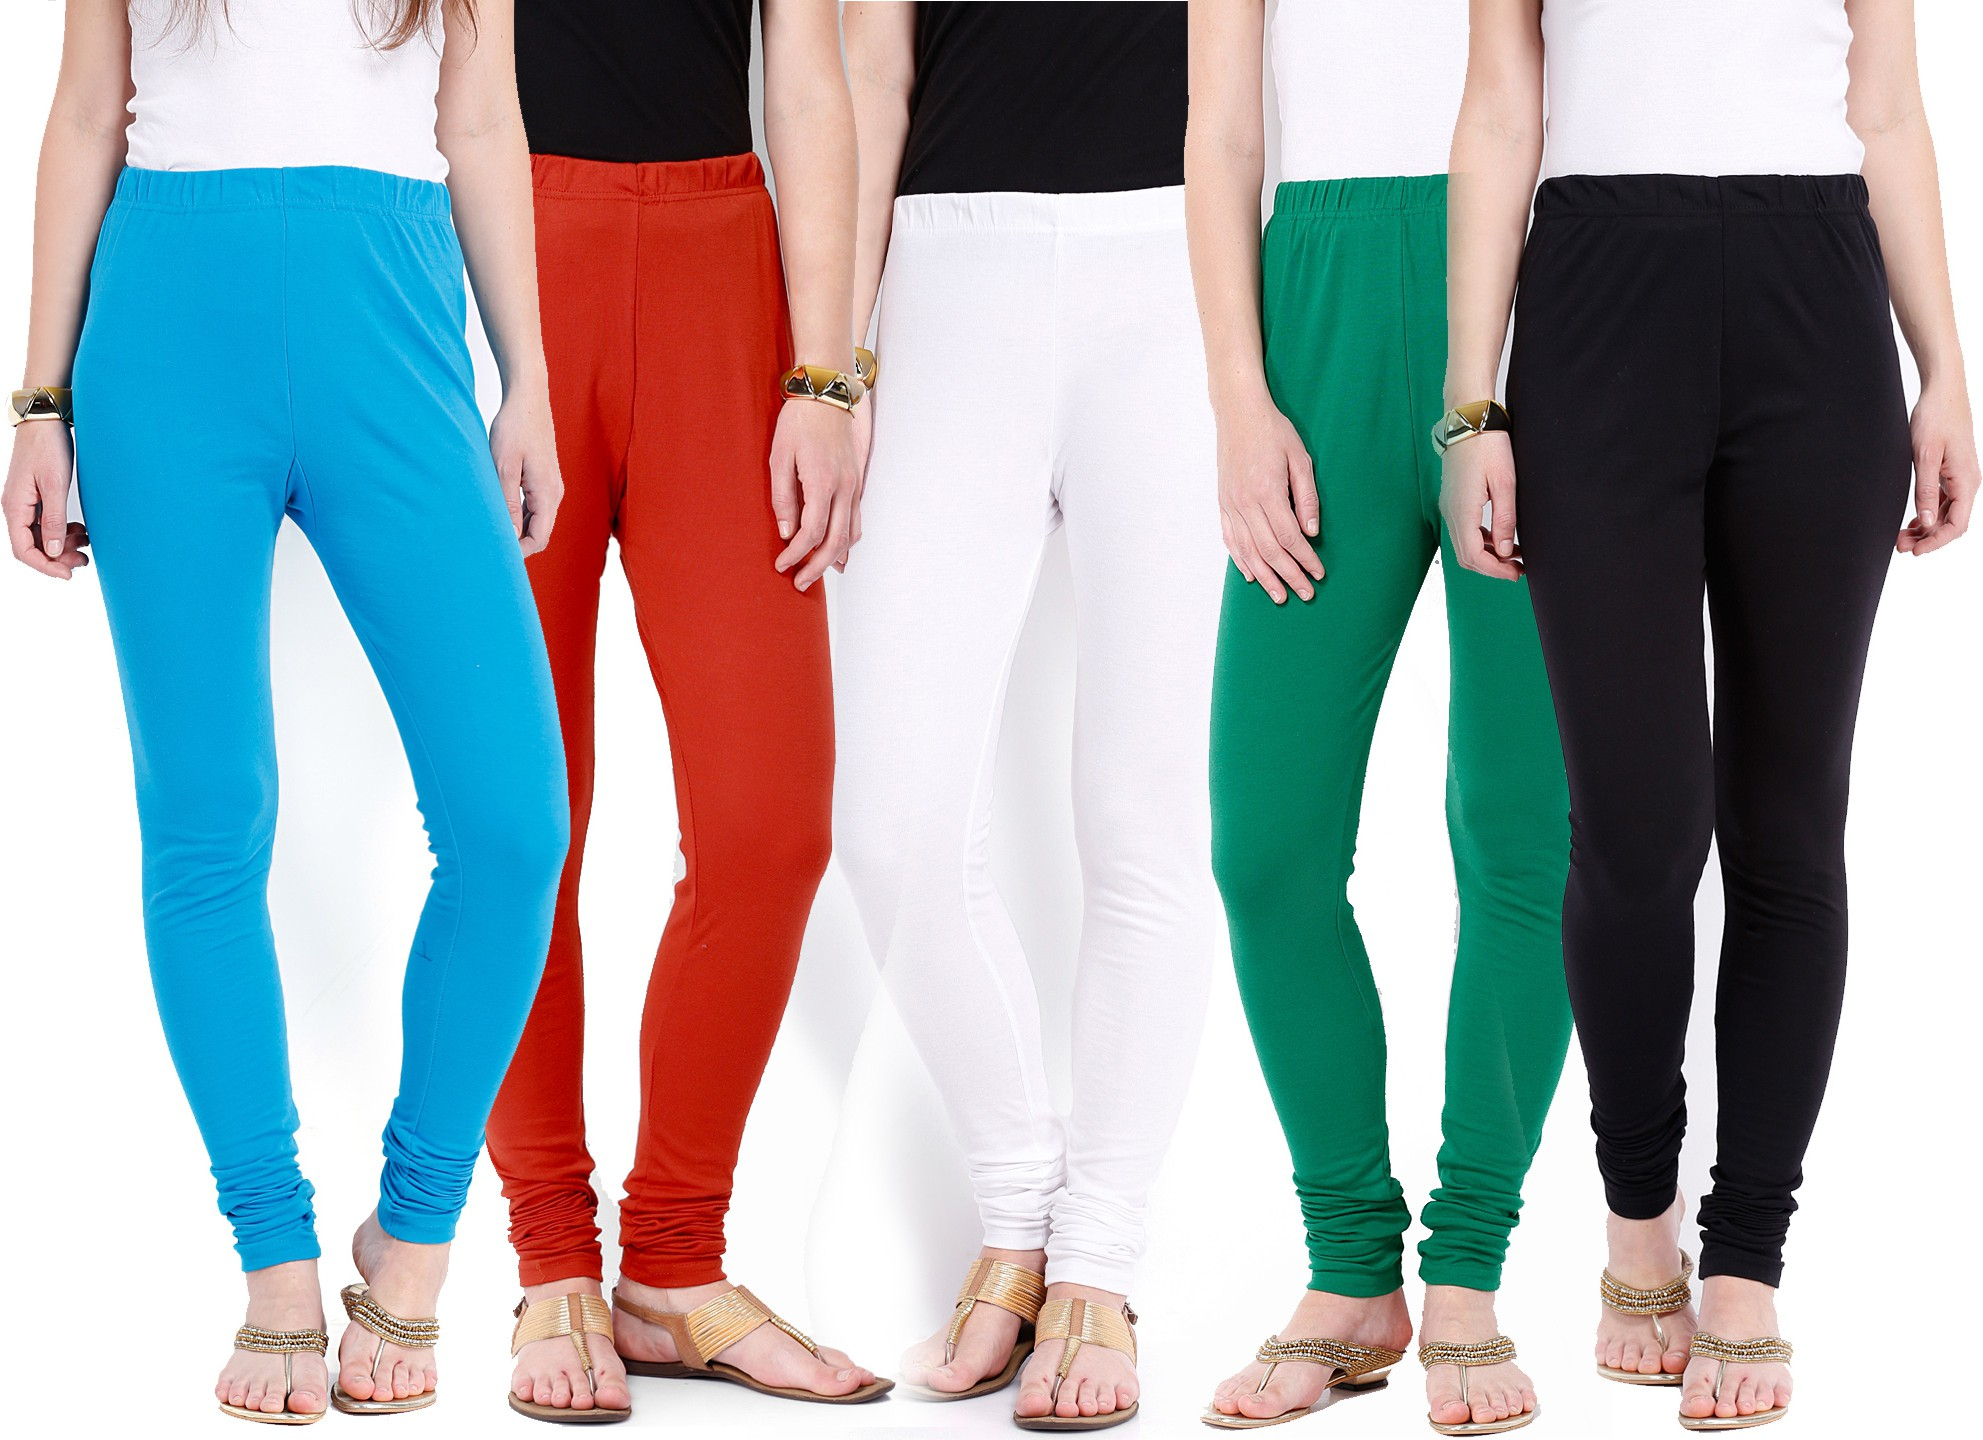 Ten on Ten Womens Blue, Red, White, Green, Black Leggings(Pack of 5)